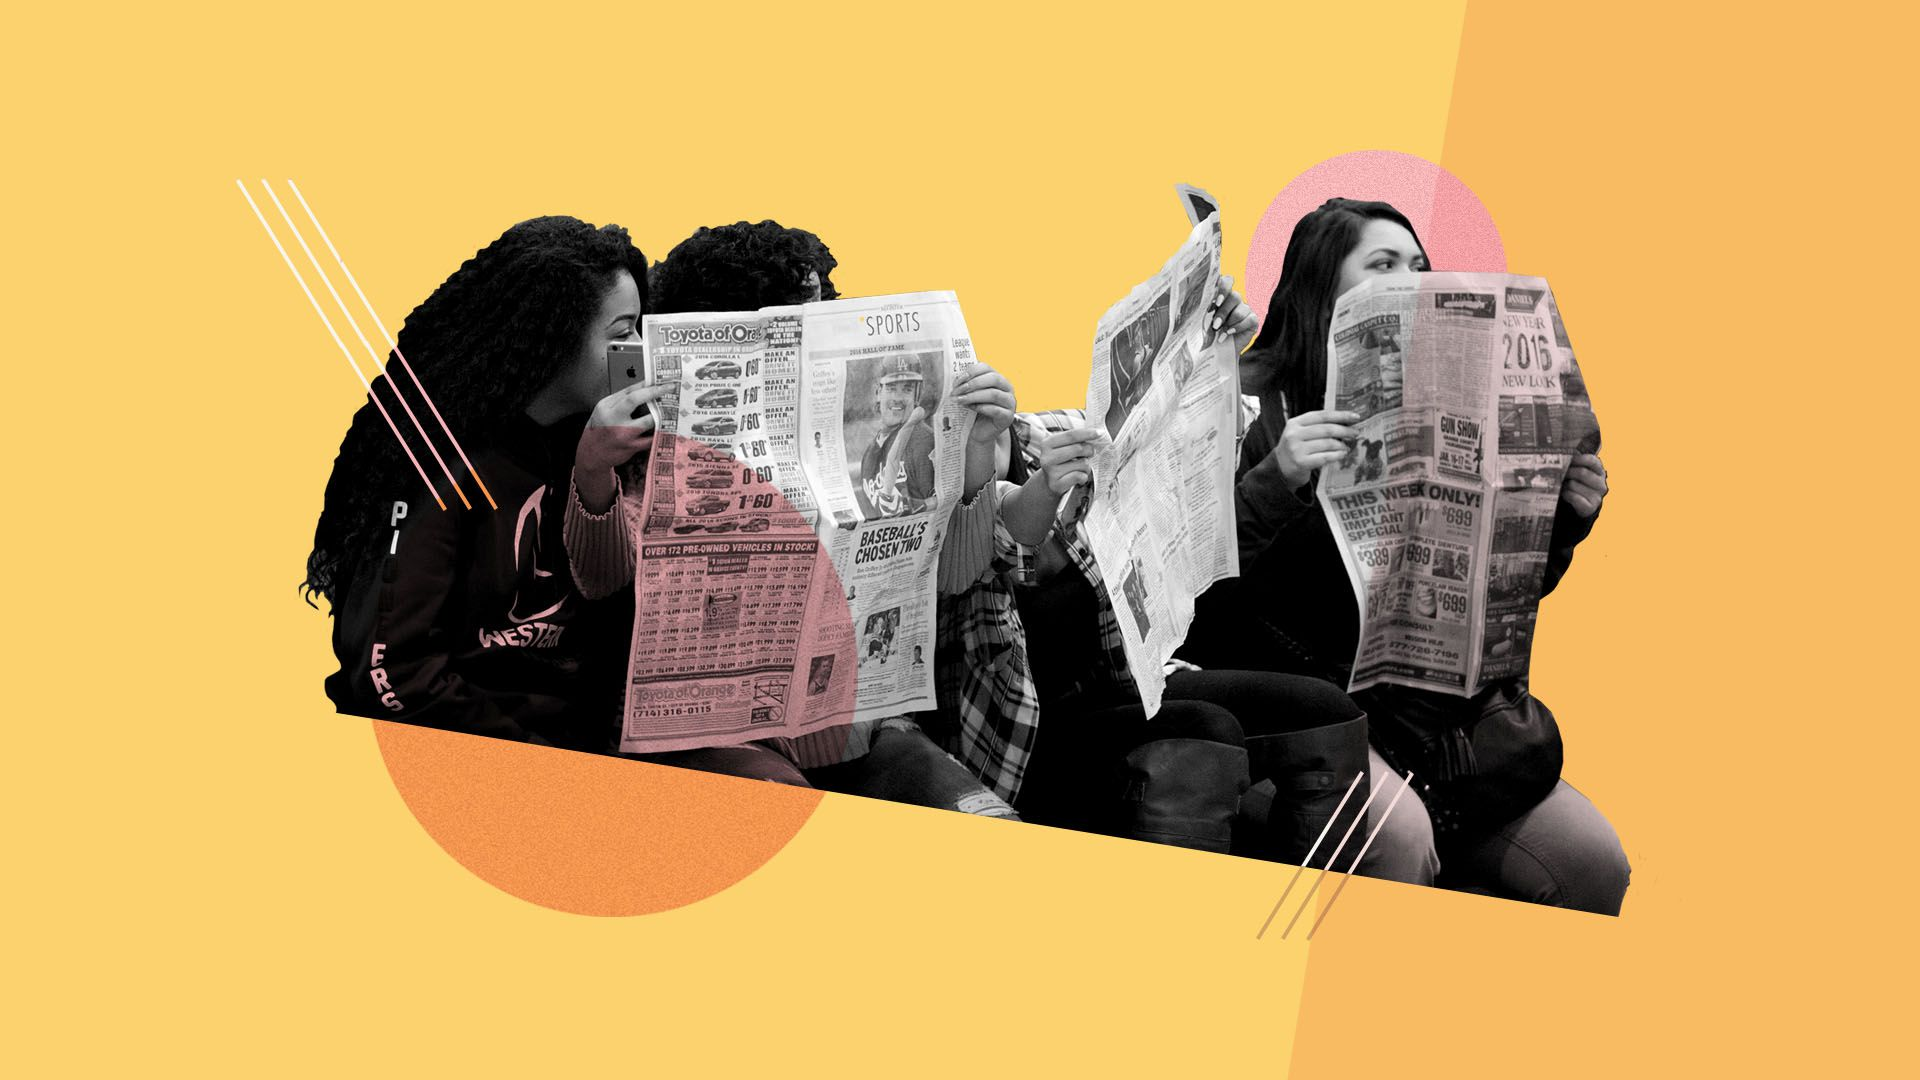 We asked the editors of 120 college newspapers what matters most to today's students